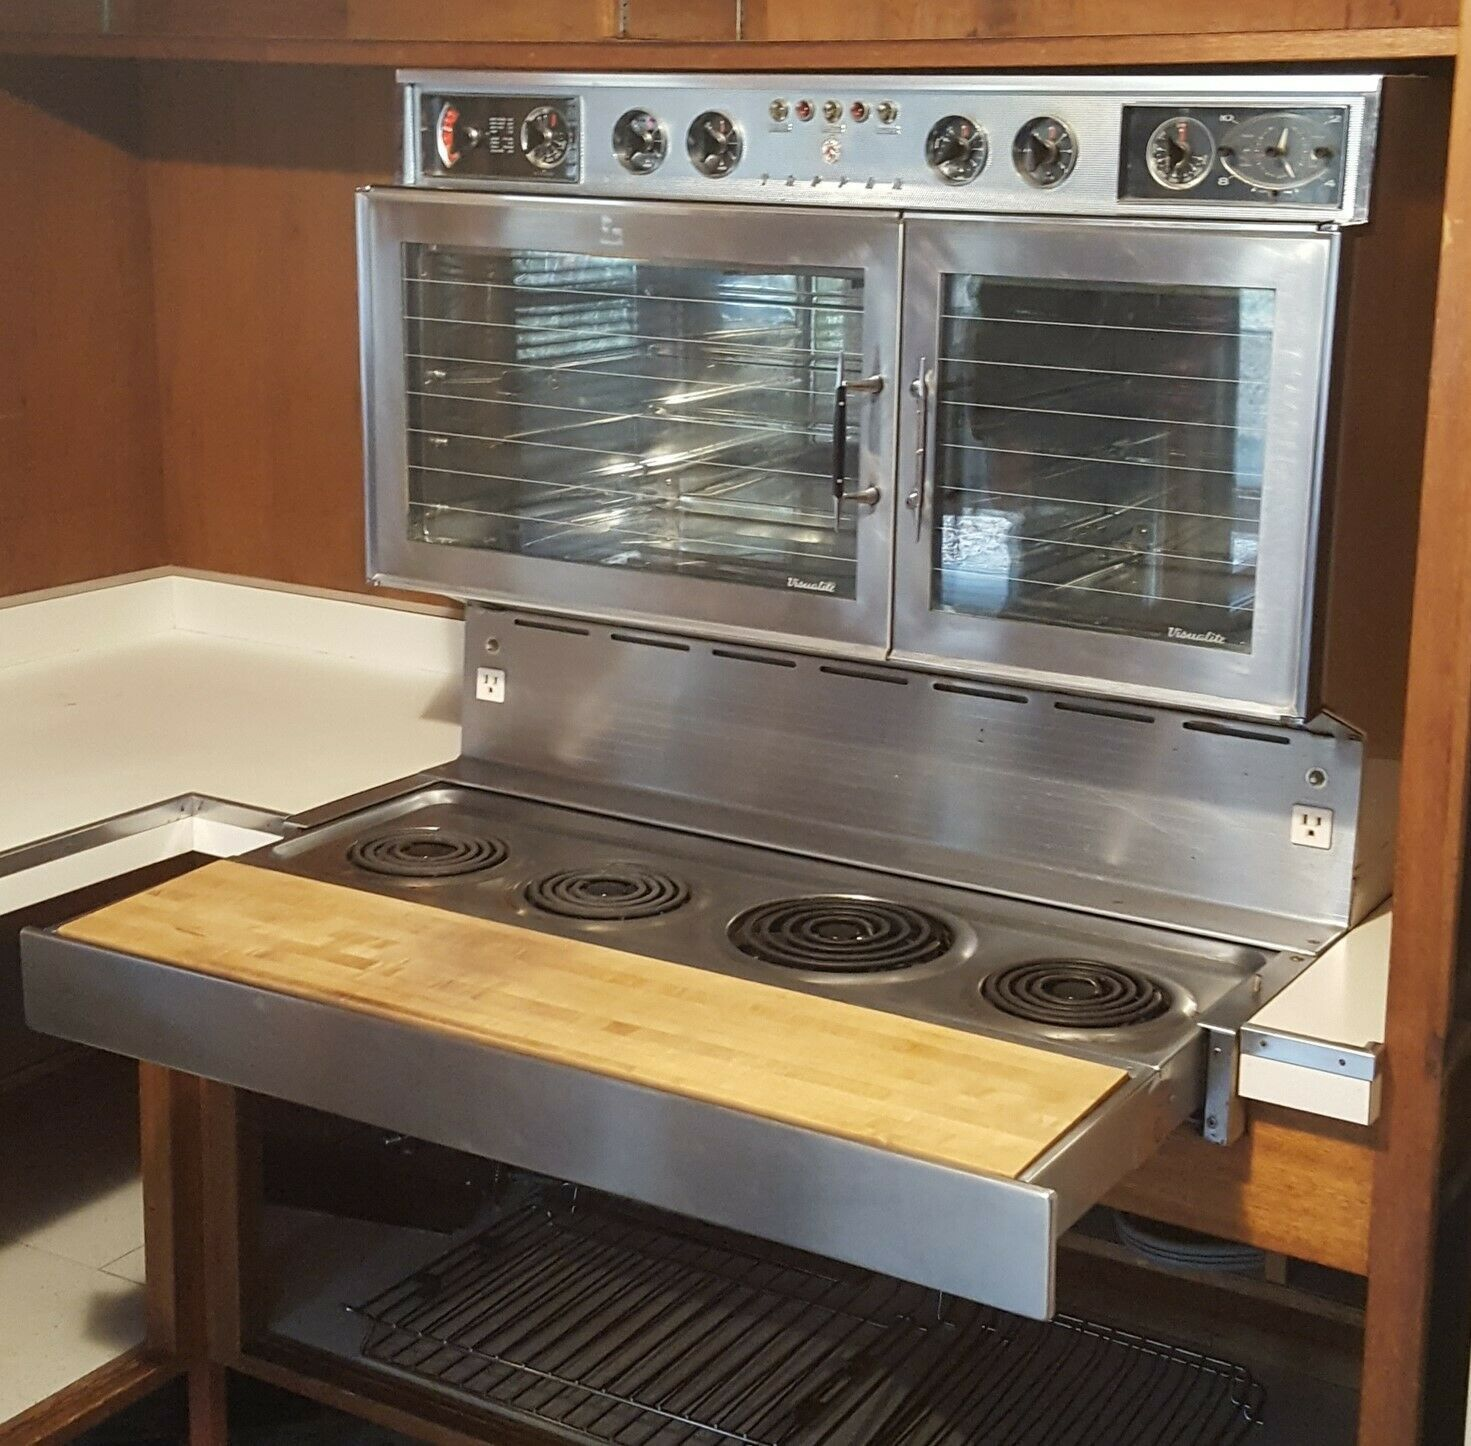 Tappan Visualite 442 Electric Range Oven Rotisserie 2nd Gen Fabulous 400 Ebay Wall Oven 24 Inch Gas Wall Oven Gas Wall Oven